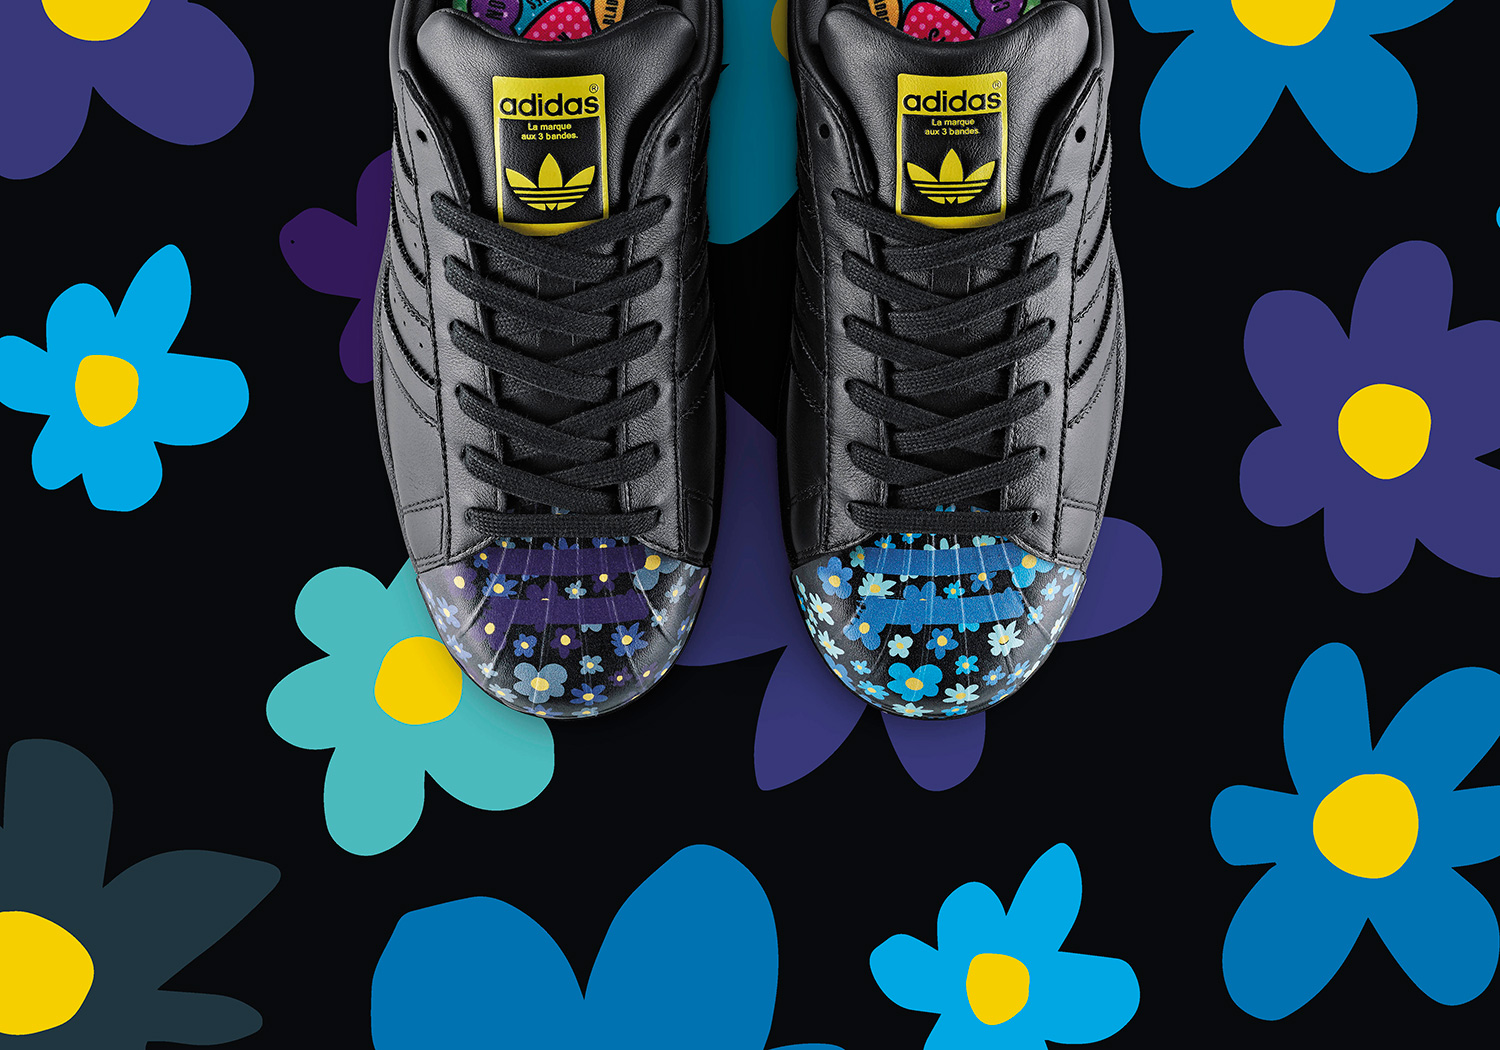 H20056_Originals_Superstar_Supershell_FW15_BTL-PR_imagery_PharrellGraphic_S83352_single-with_pattern_HighRes_RGB